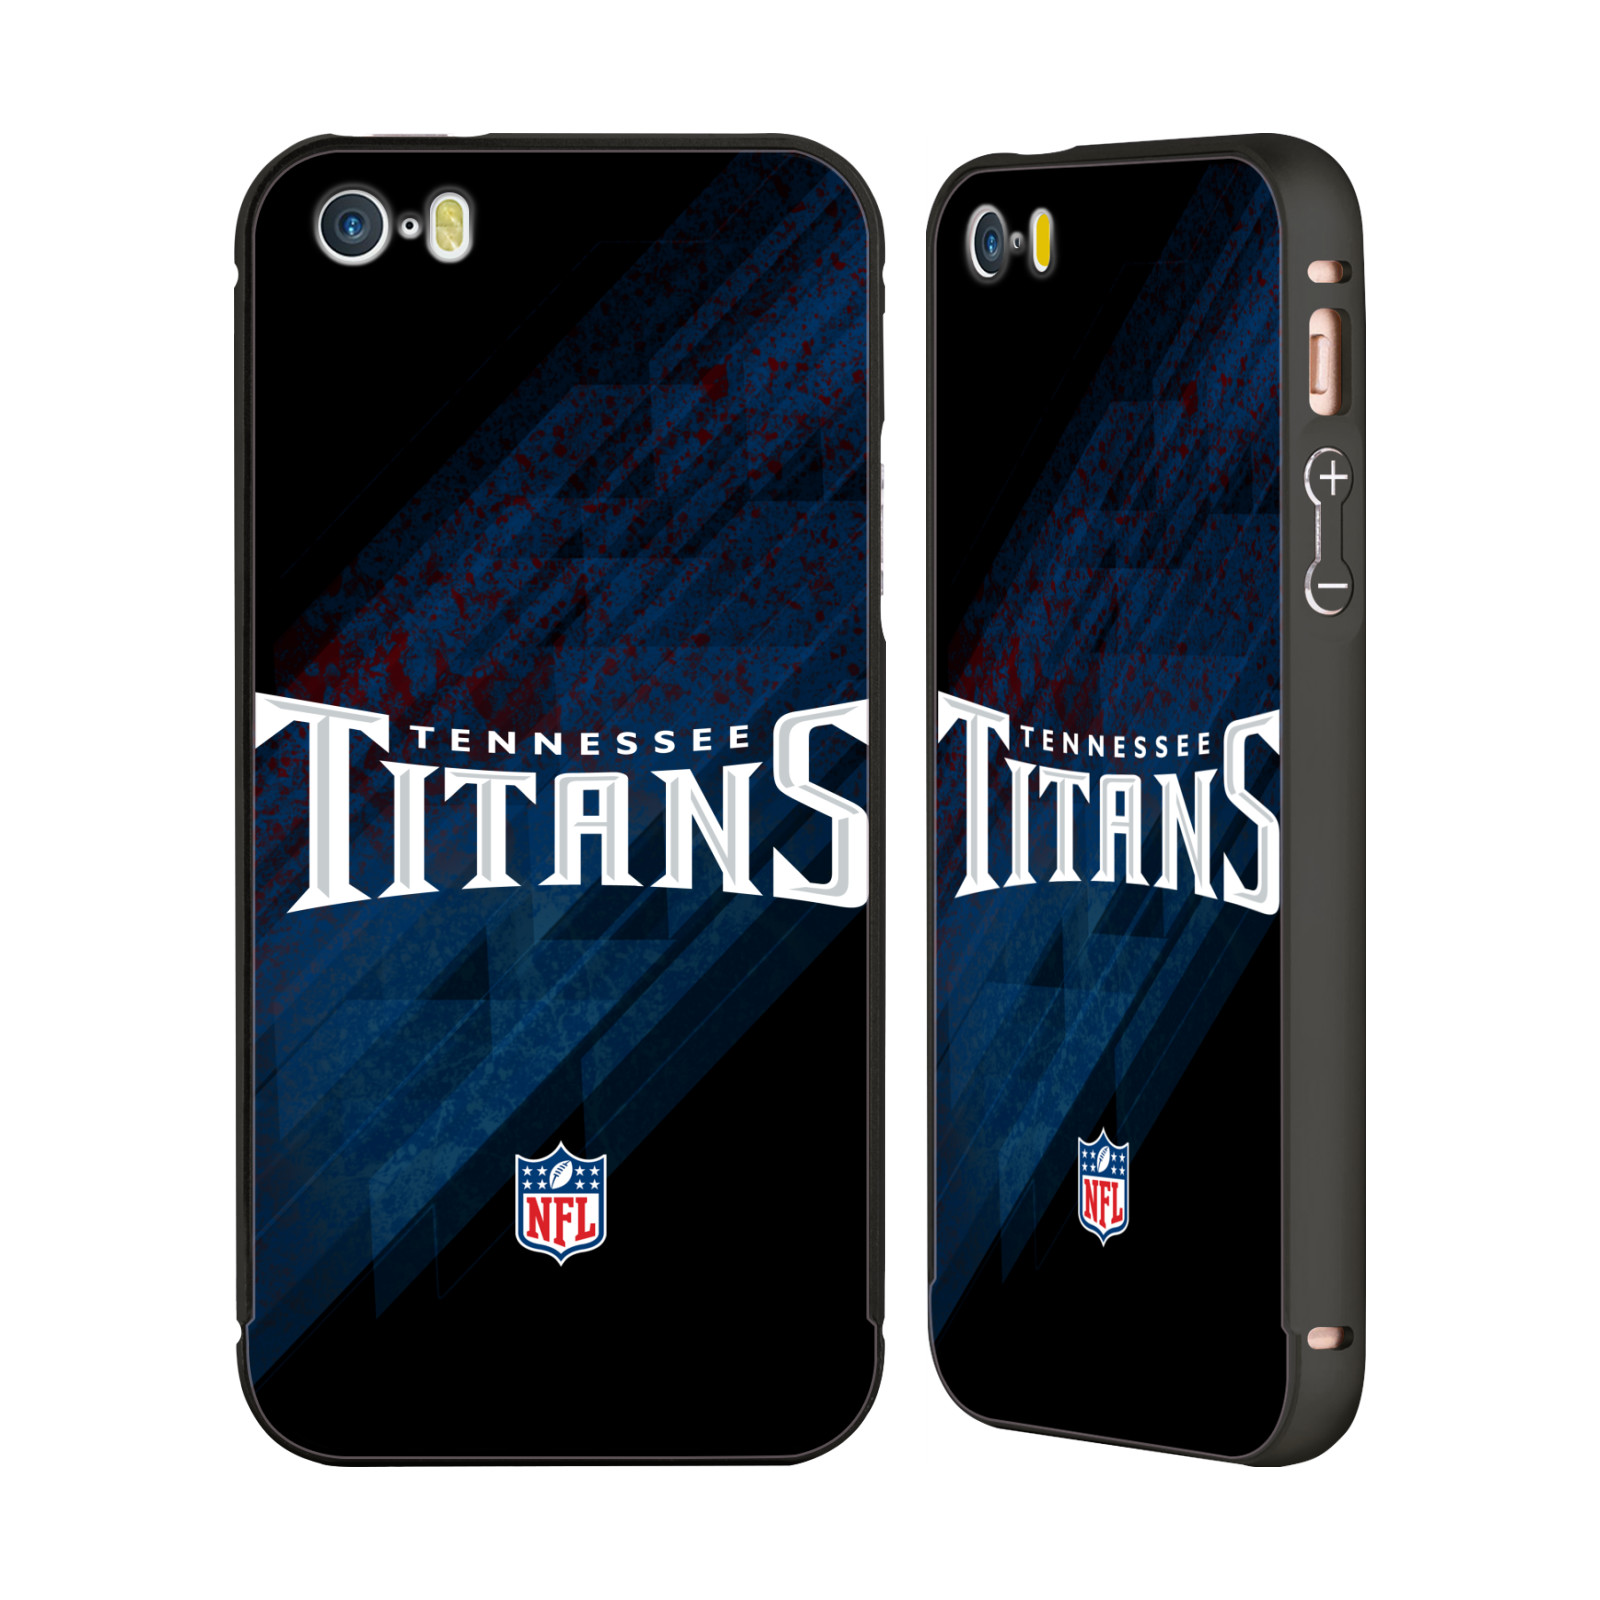 OFFICIAL-NFL-TENNESSEE-TITANS-LOGO-BLACK-SLIDER-CASE-FOR-APPLE-iPHONE-PHONES